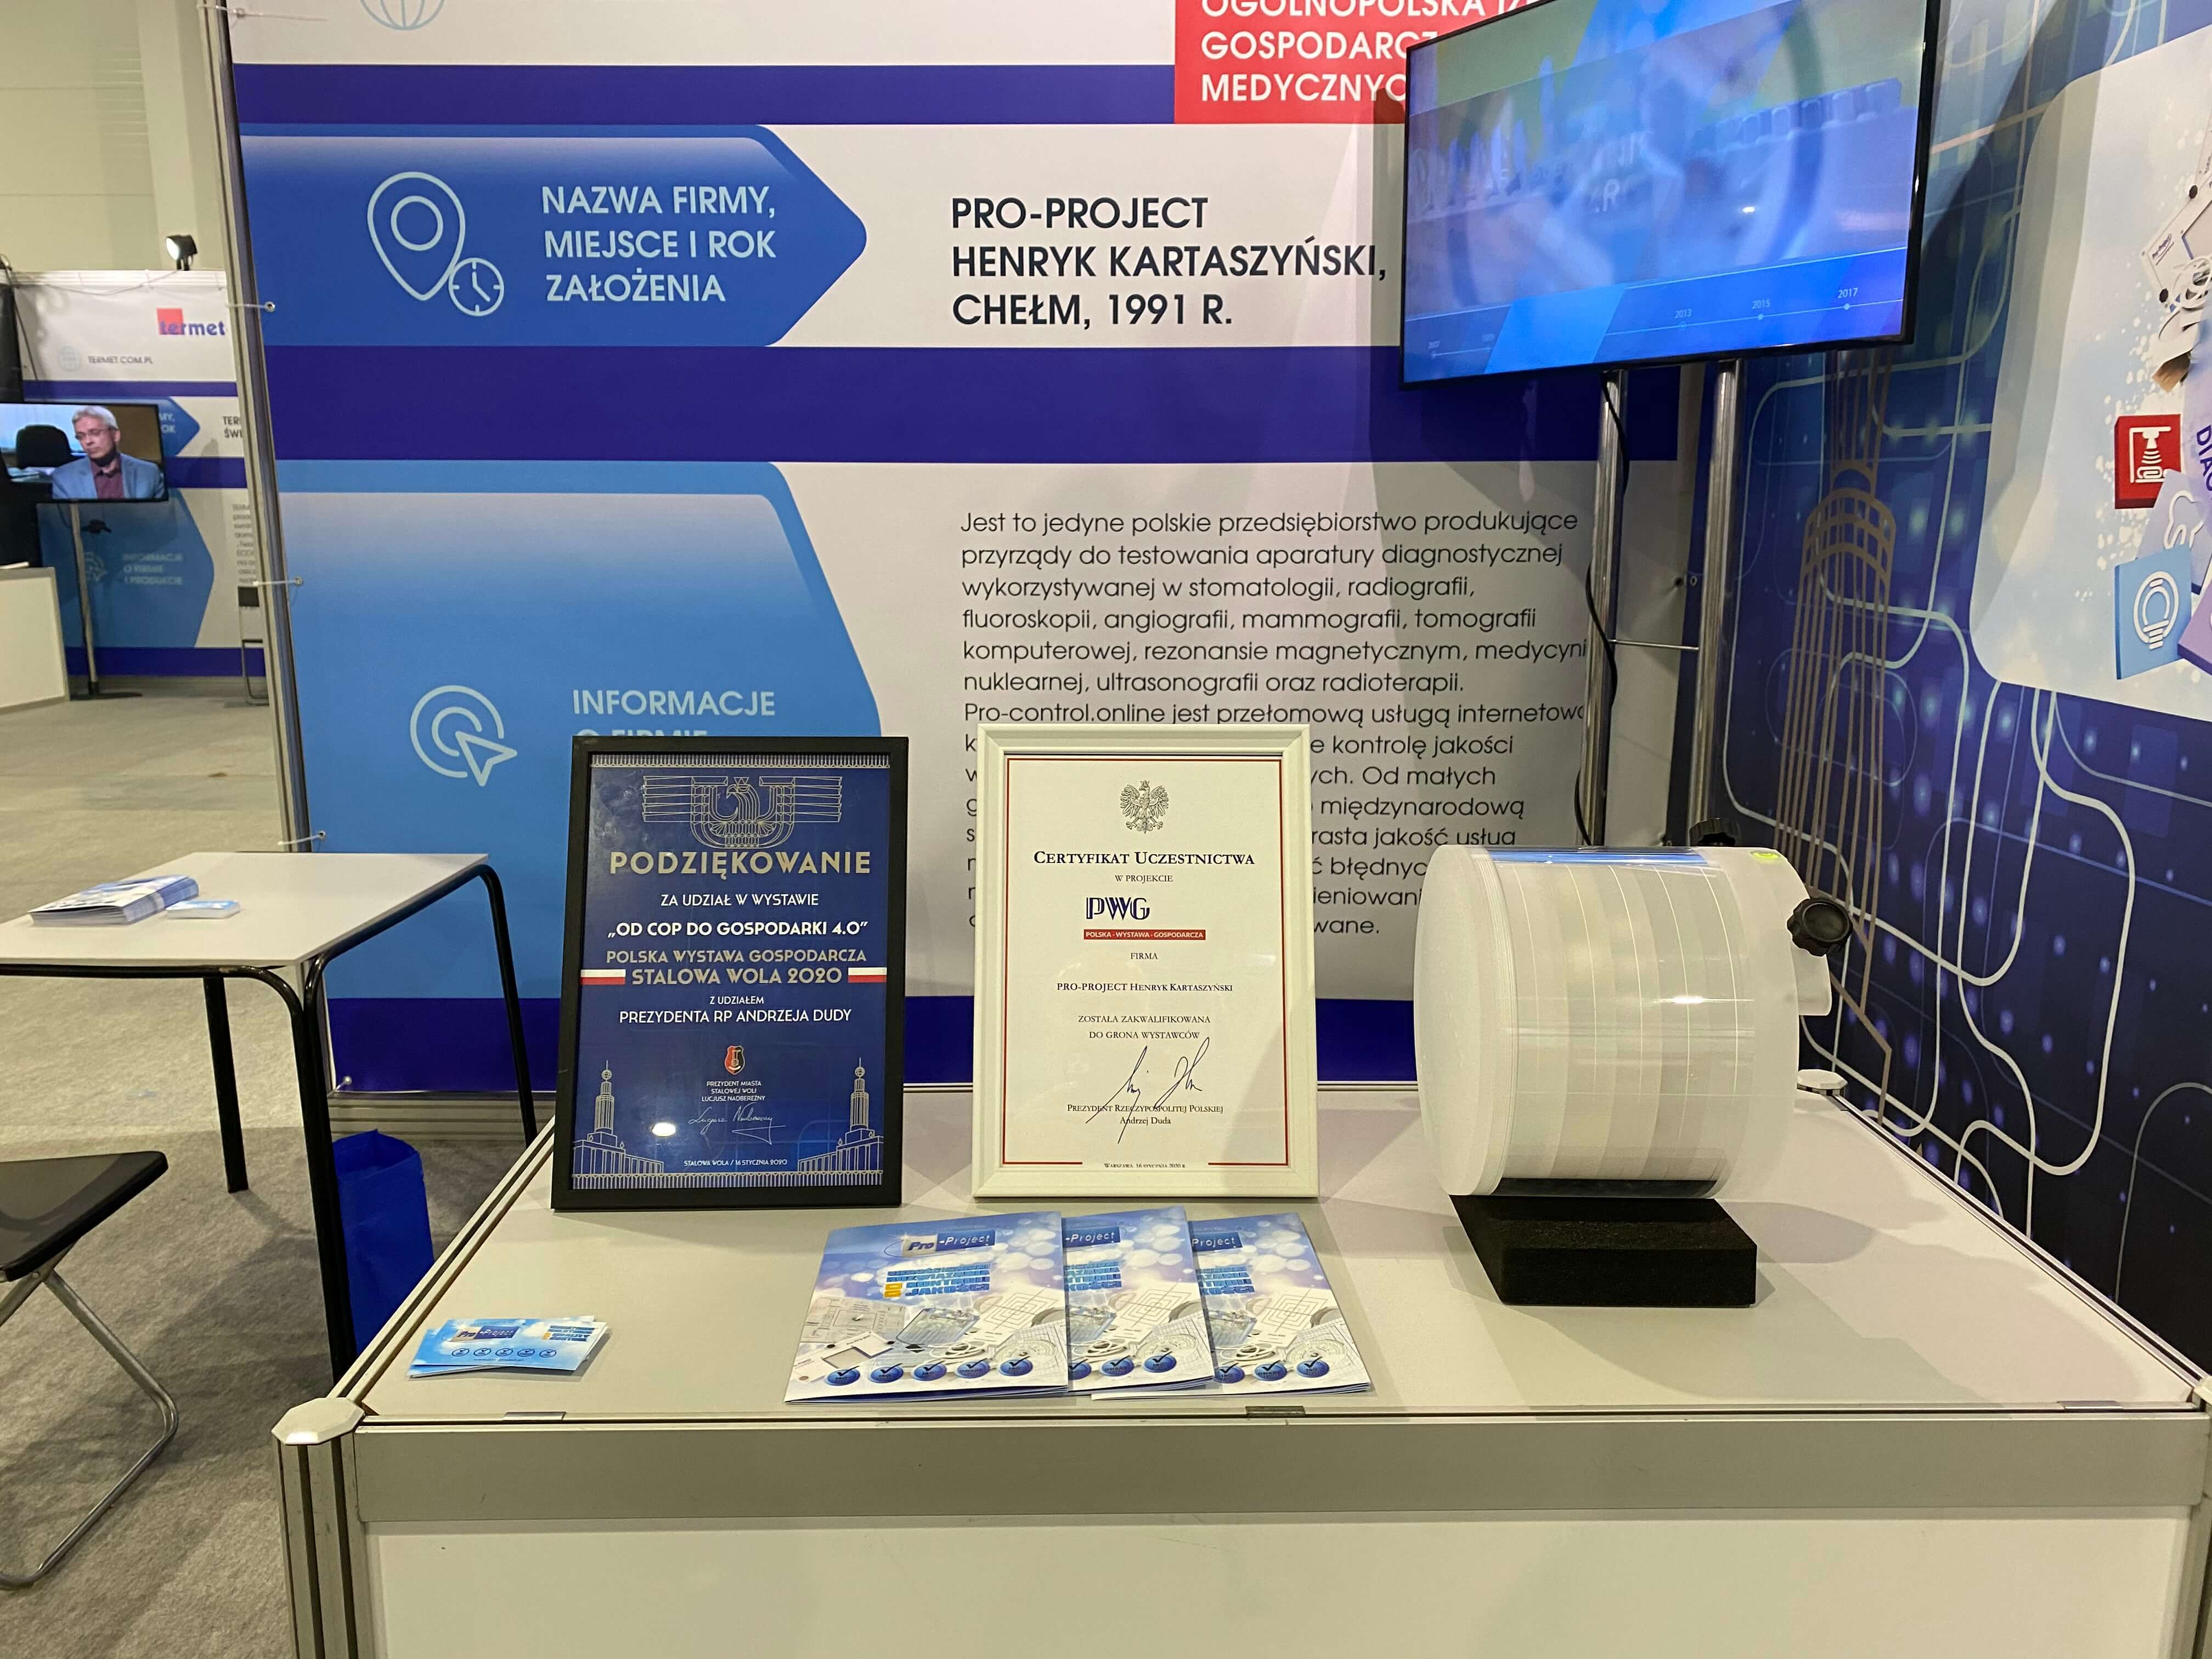 Pro-Project's booth on the Polish Economi Exhibition 2020. A square space with big TV, and a table. On the table are flyers, Pro-CT MK II phantom and certyficates.